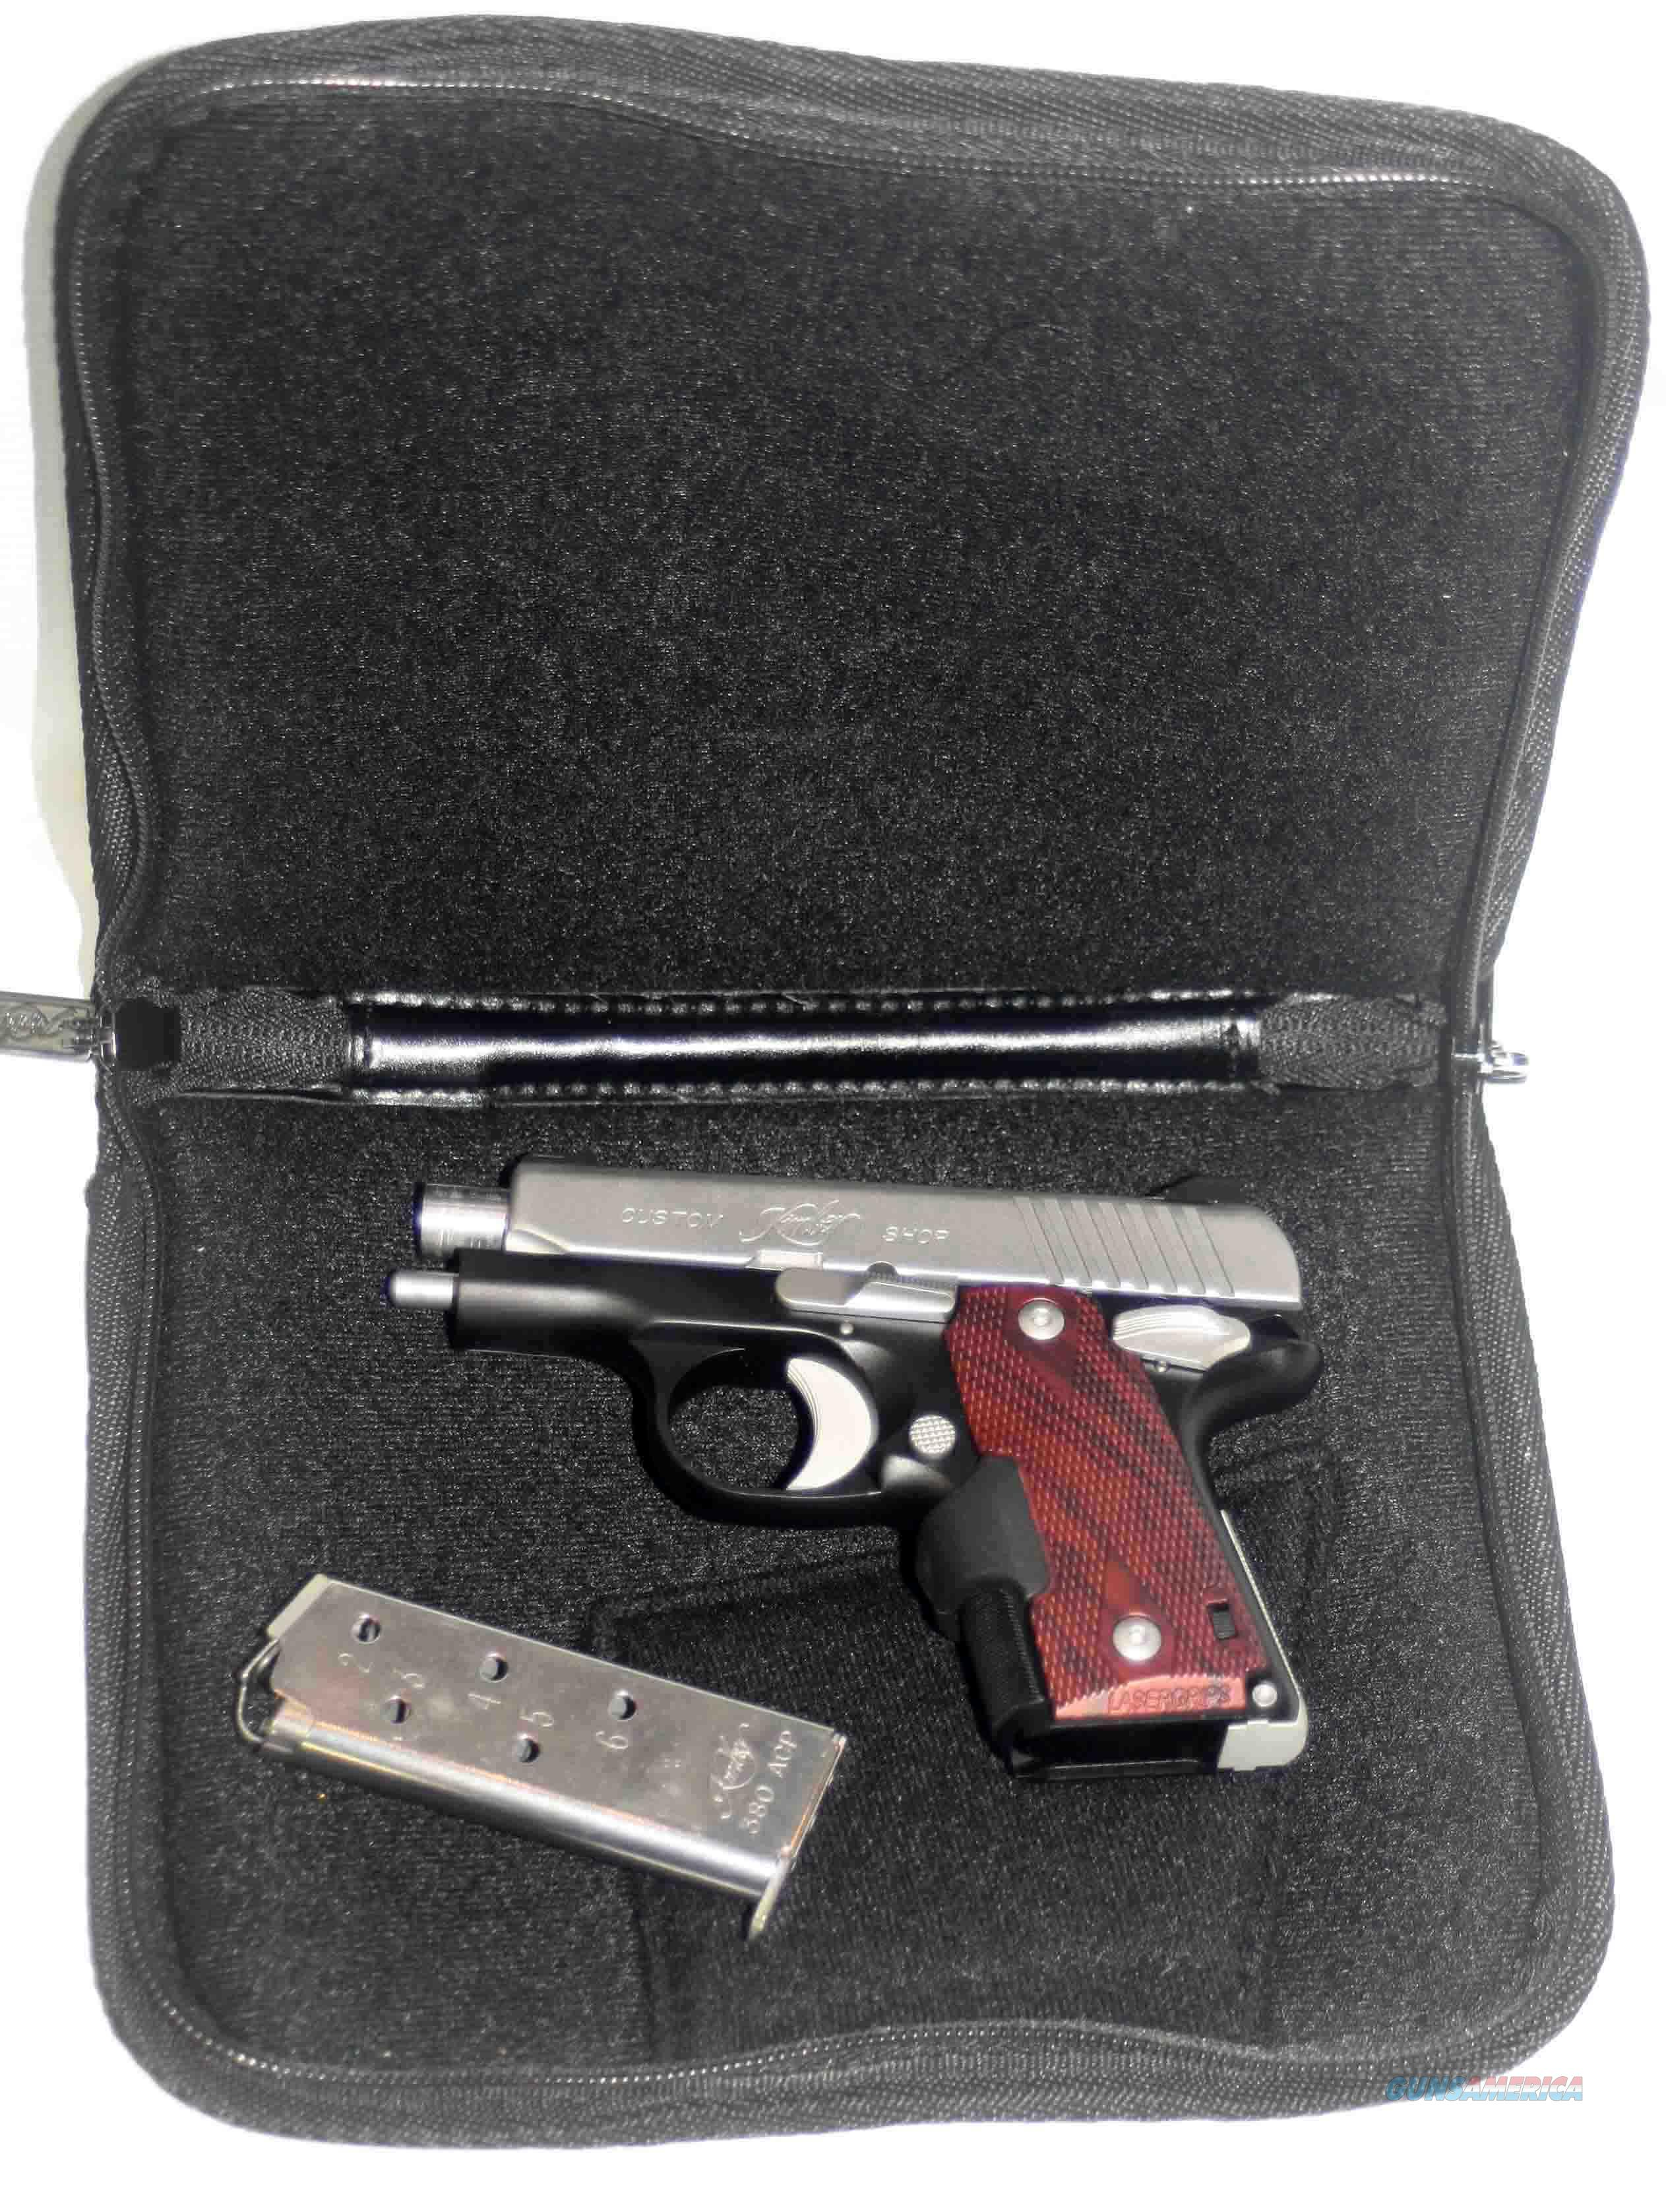 KIMBER MICRO CDP WITH LASER GRIPS NEW IN BOX  Guns > Pistols > Kimber of America Pistols